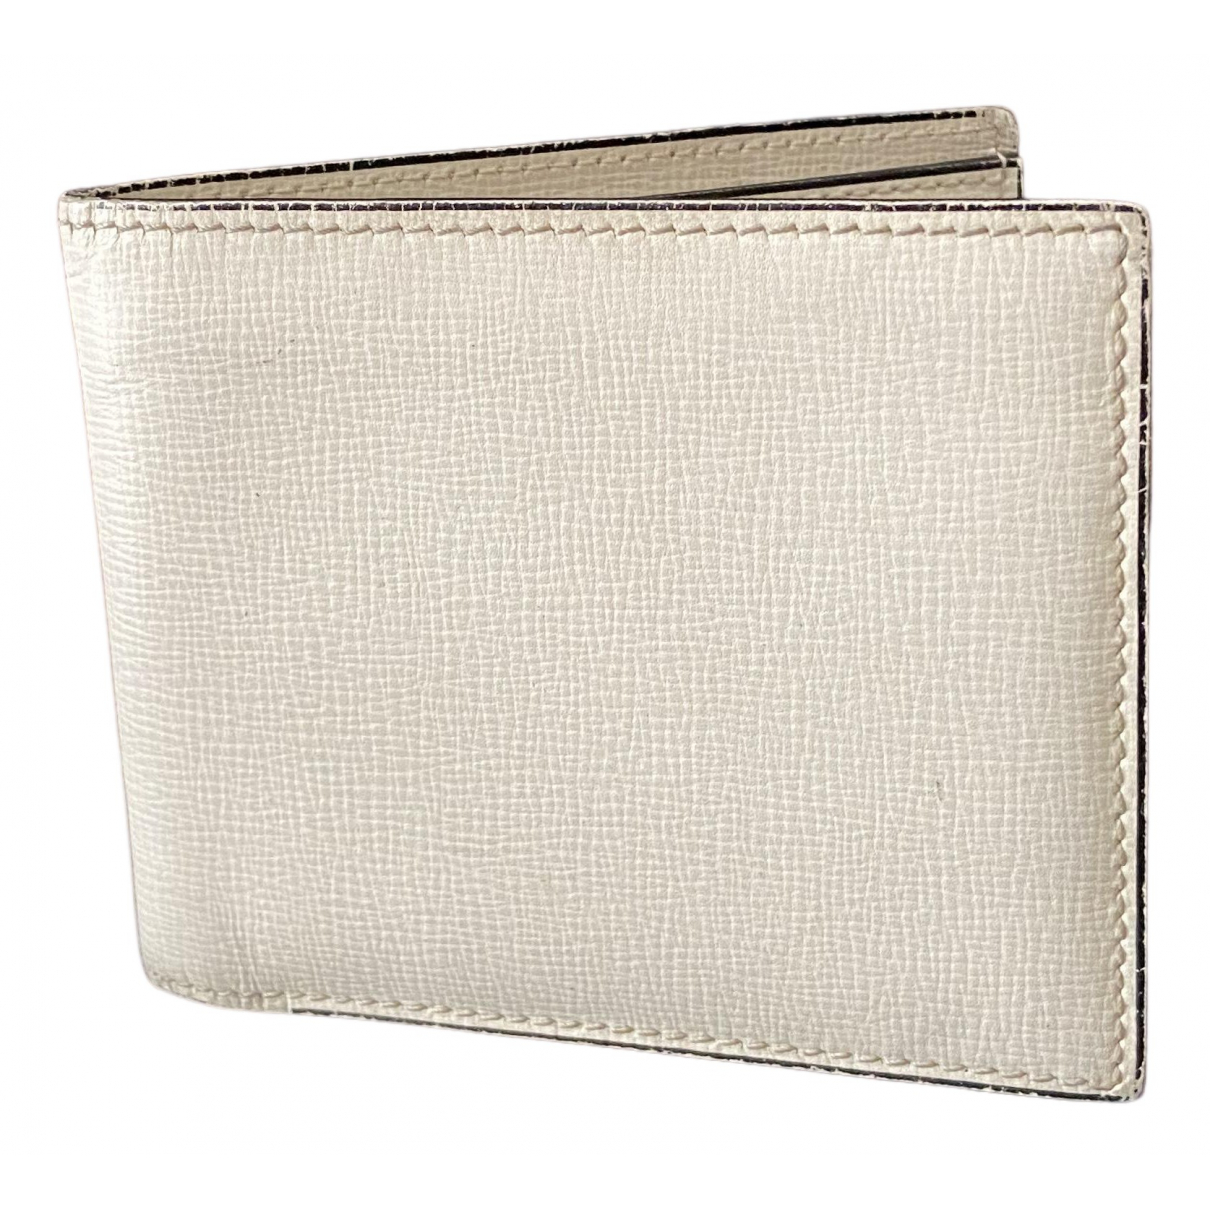 Valextra N White Leather Small bag, wallet & cases for Men N